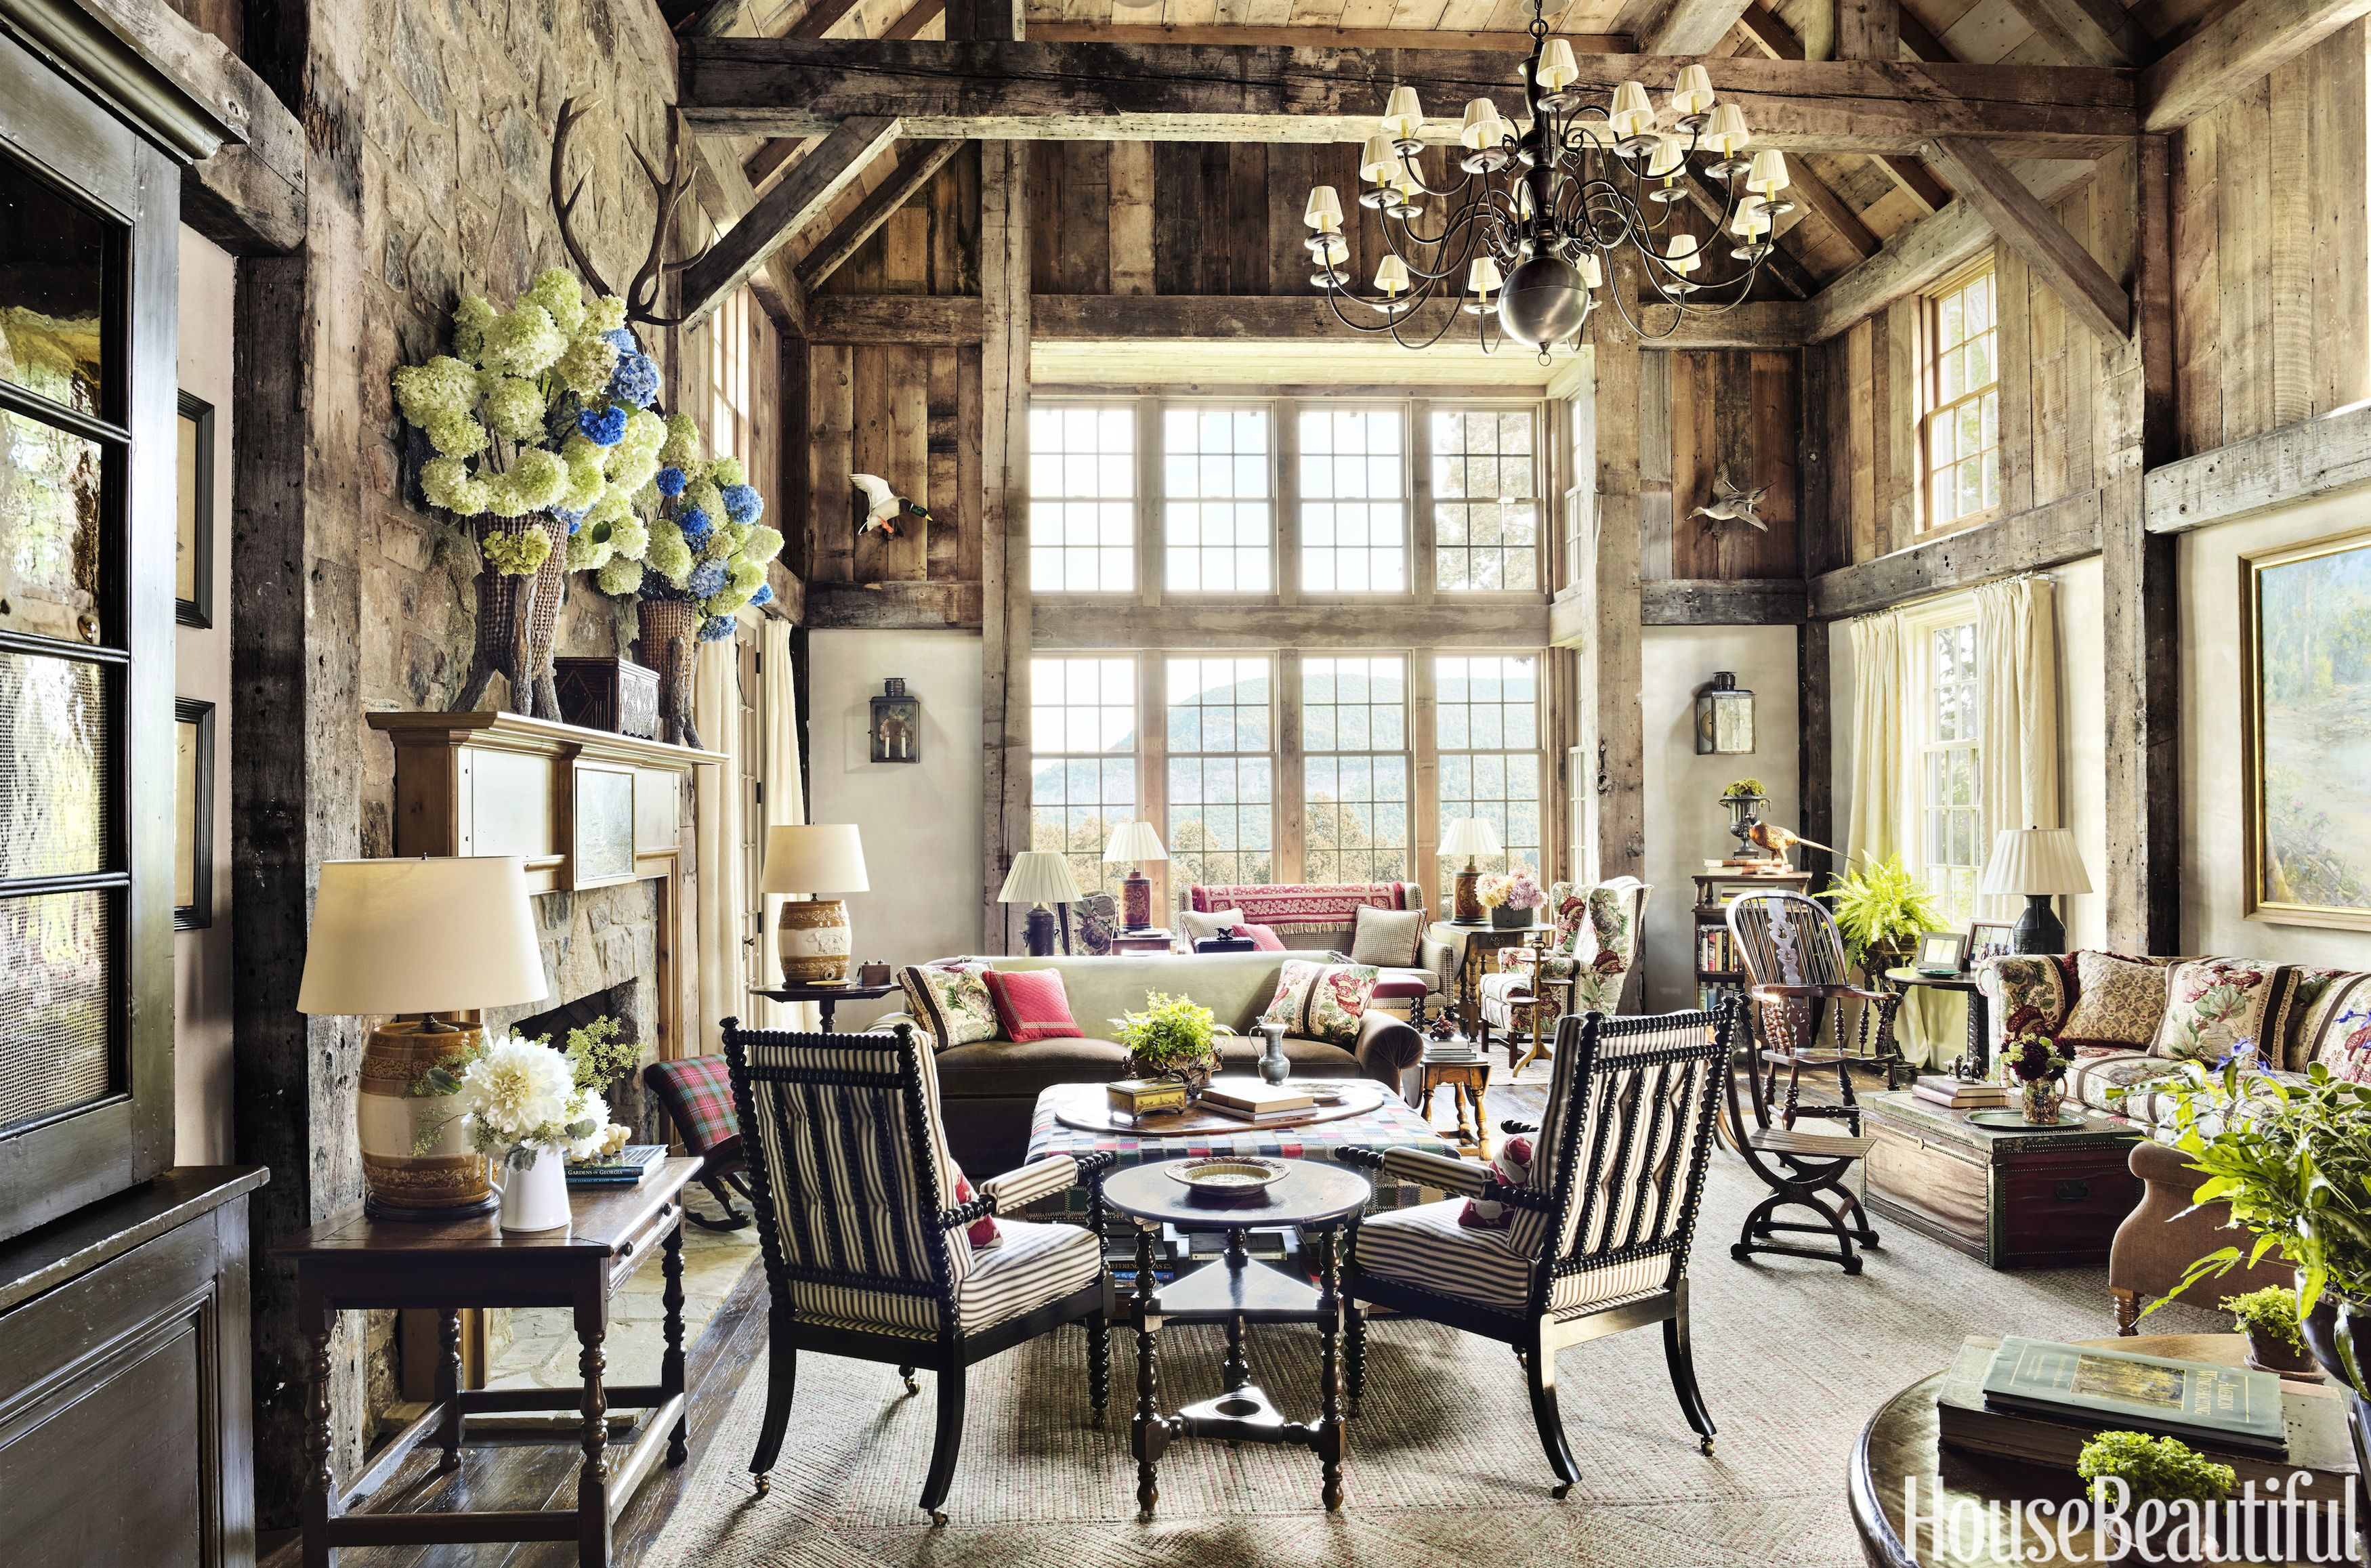 living room interior design pictures old house ideas 60 best decorating designs housebeautiful com